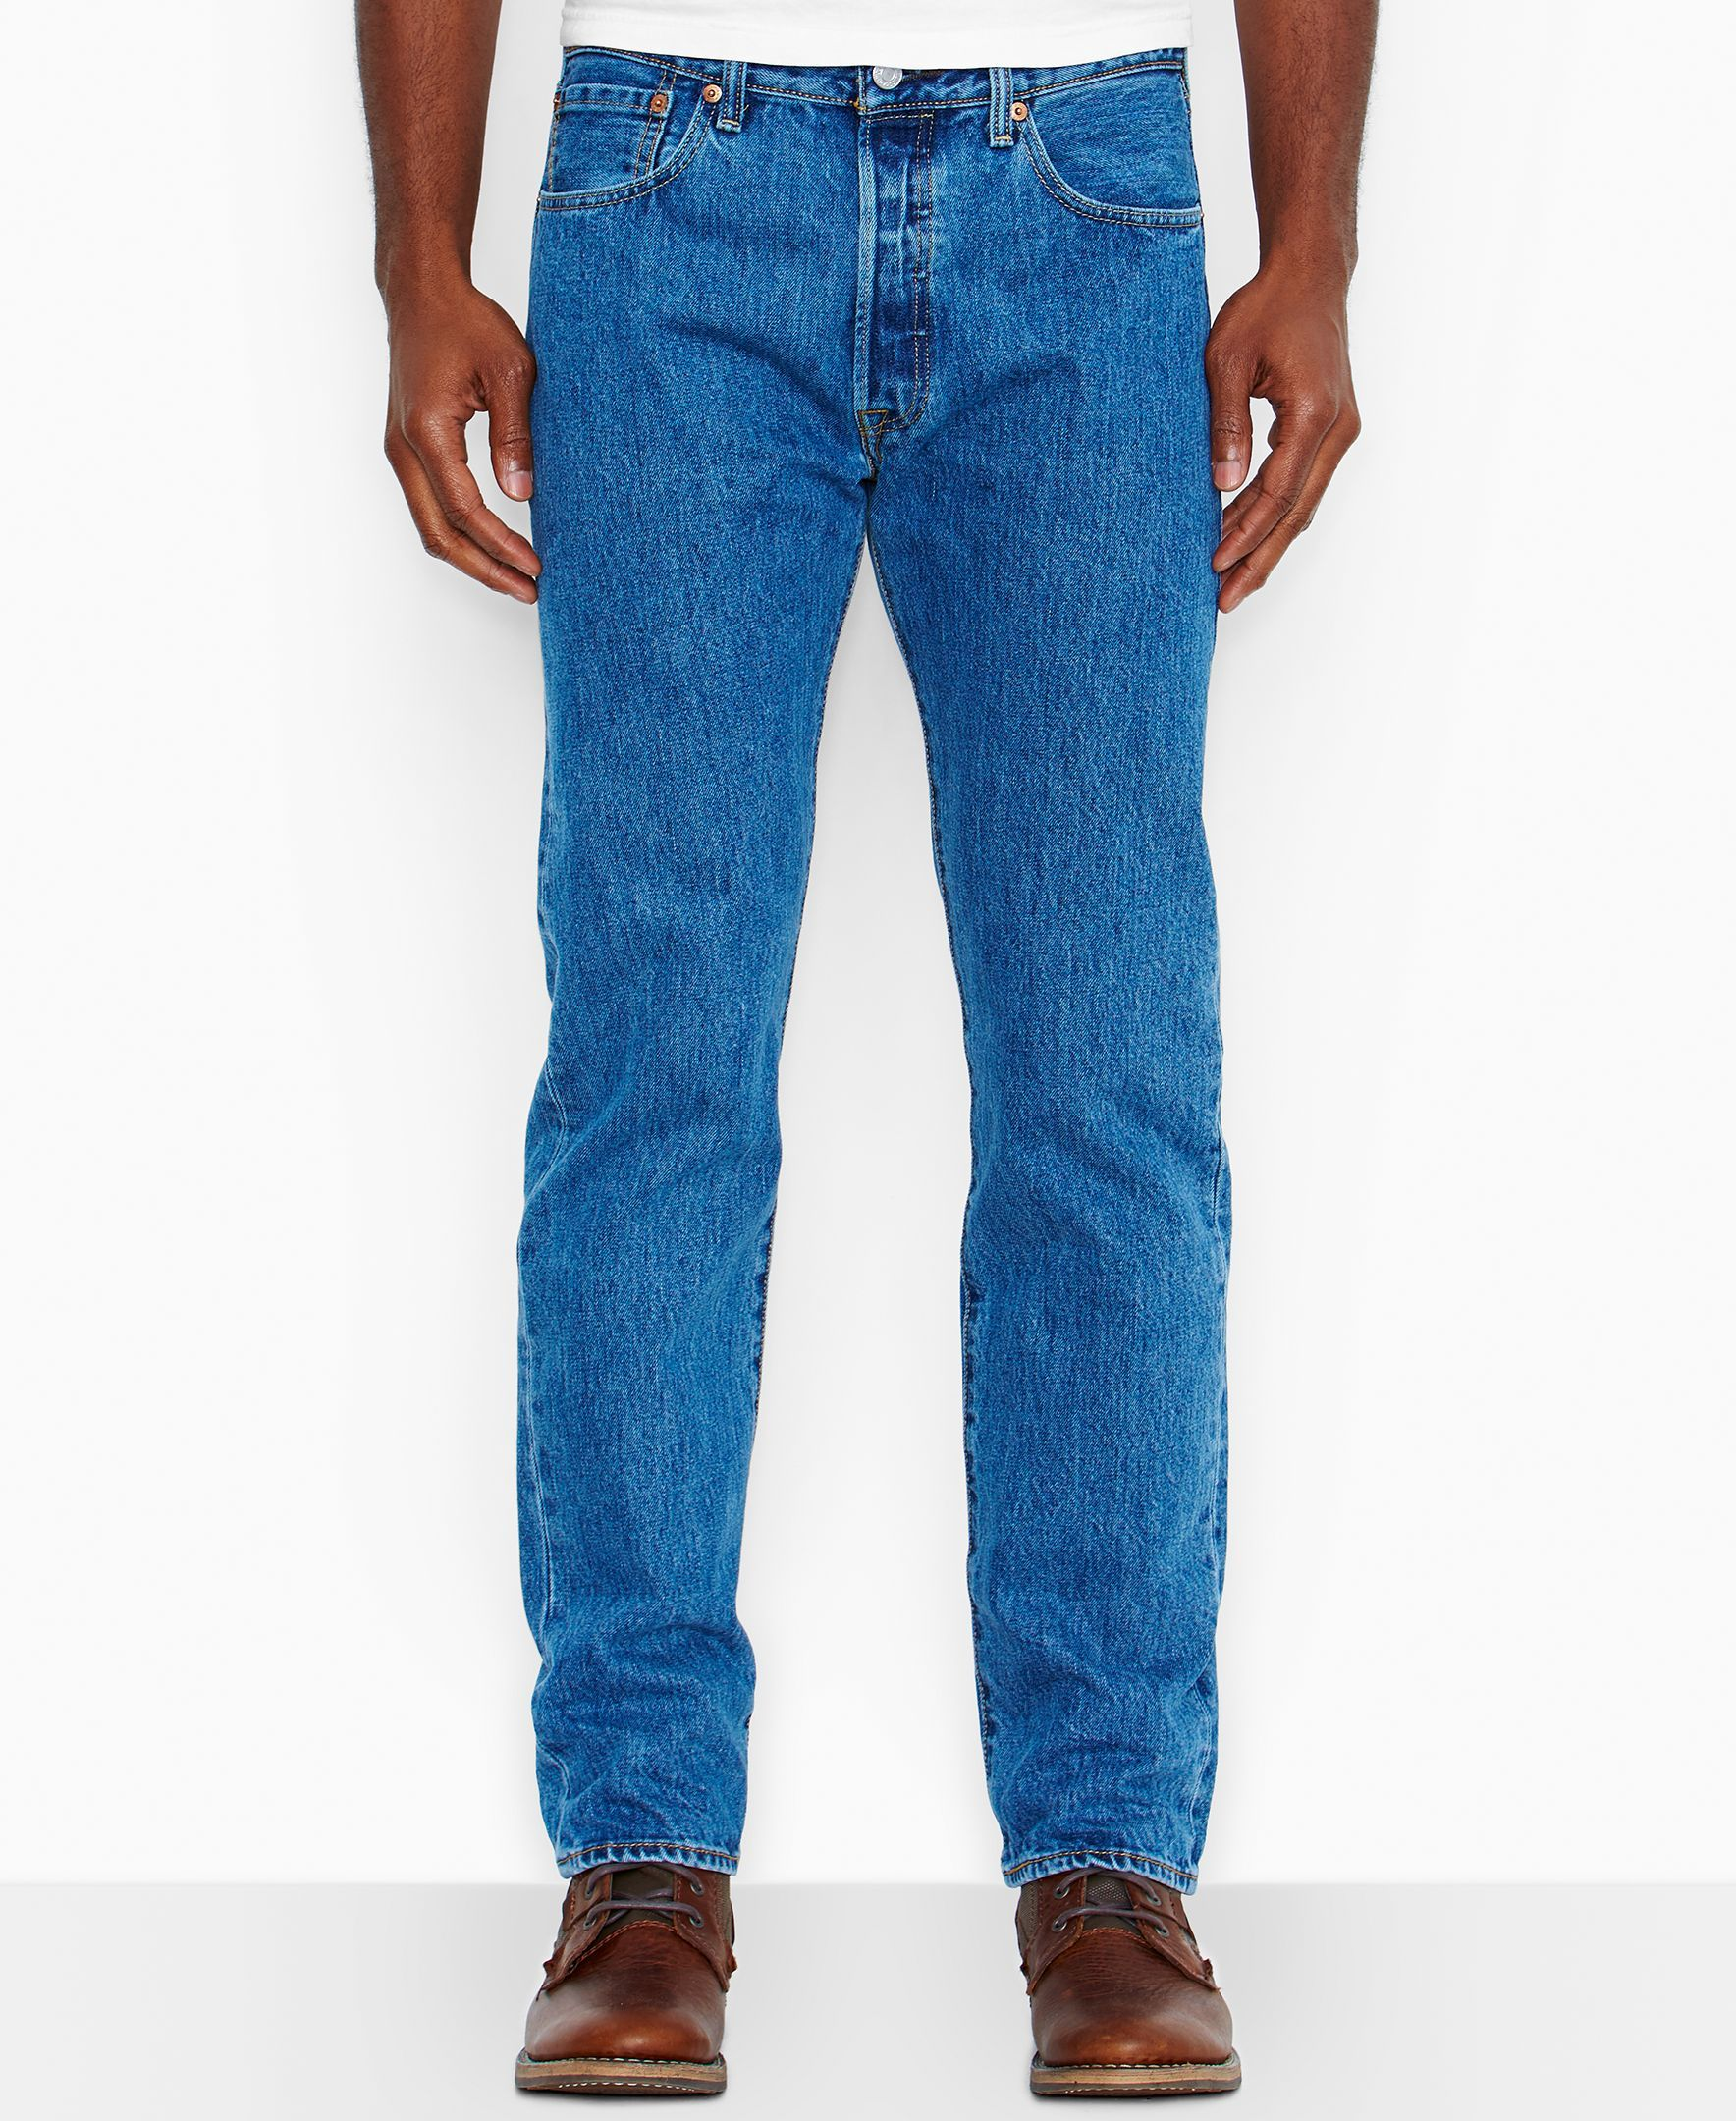 46dc6428 Levi's Big and Tall 501 Original-Fit Medium-Stonewash Jeans ...